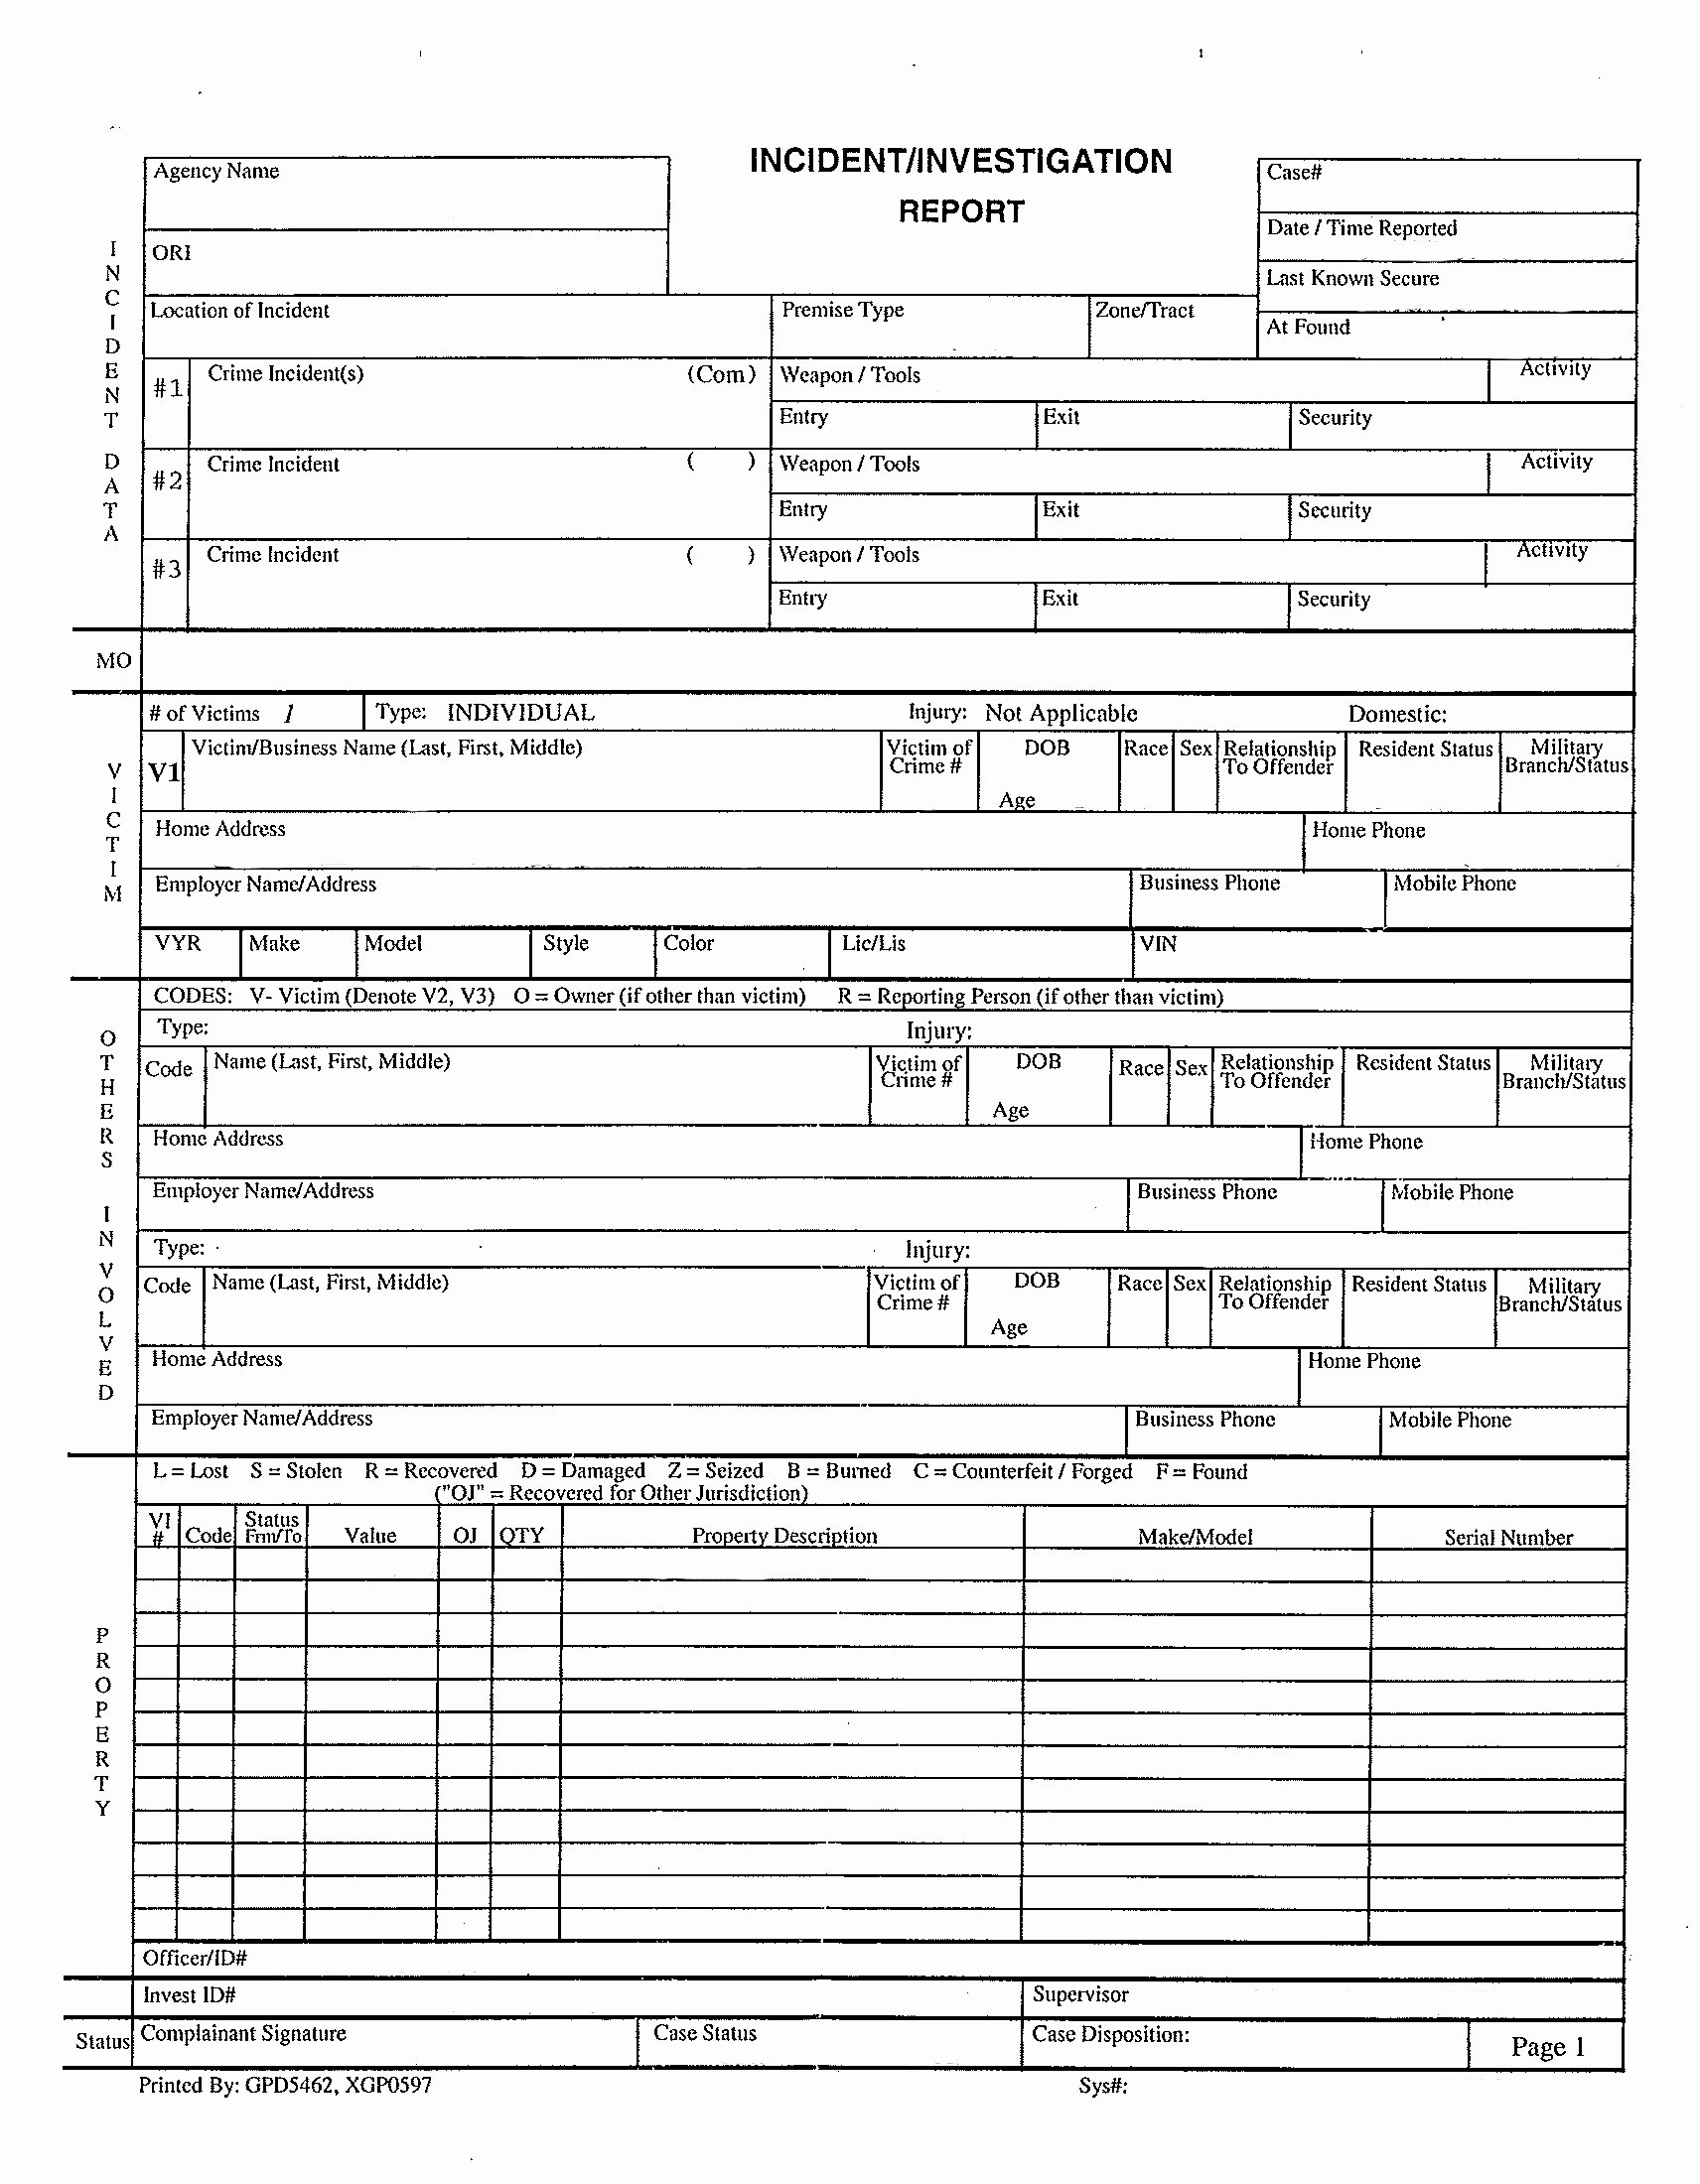 Police Arrest Report Template Fresh What Could Happen if I File A False Jacksonville Police